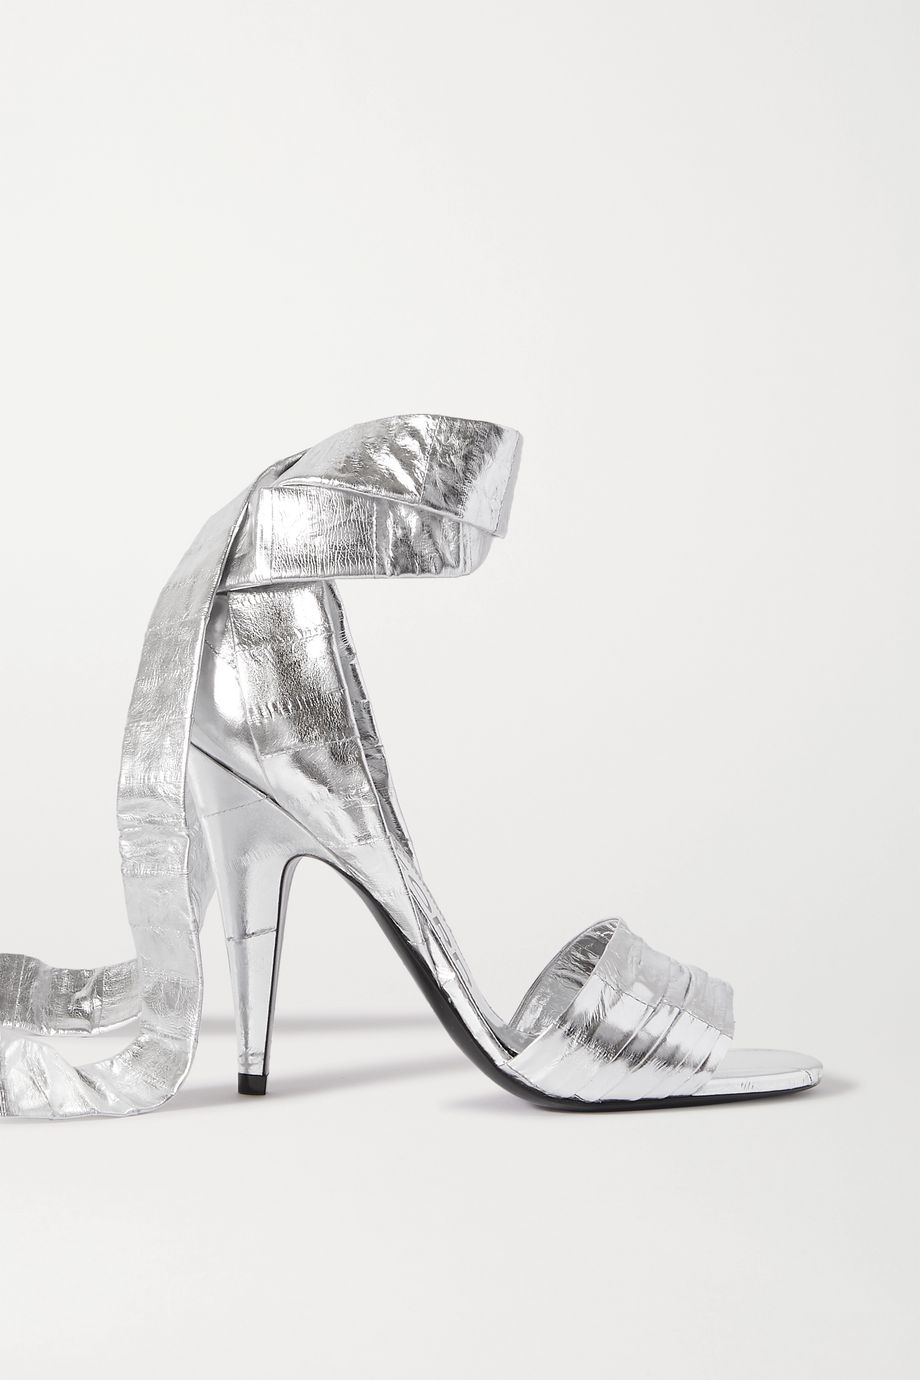 TOM FORD Metallic eel sandals